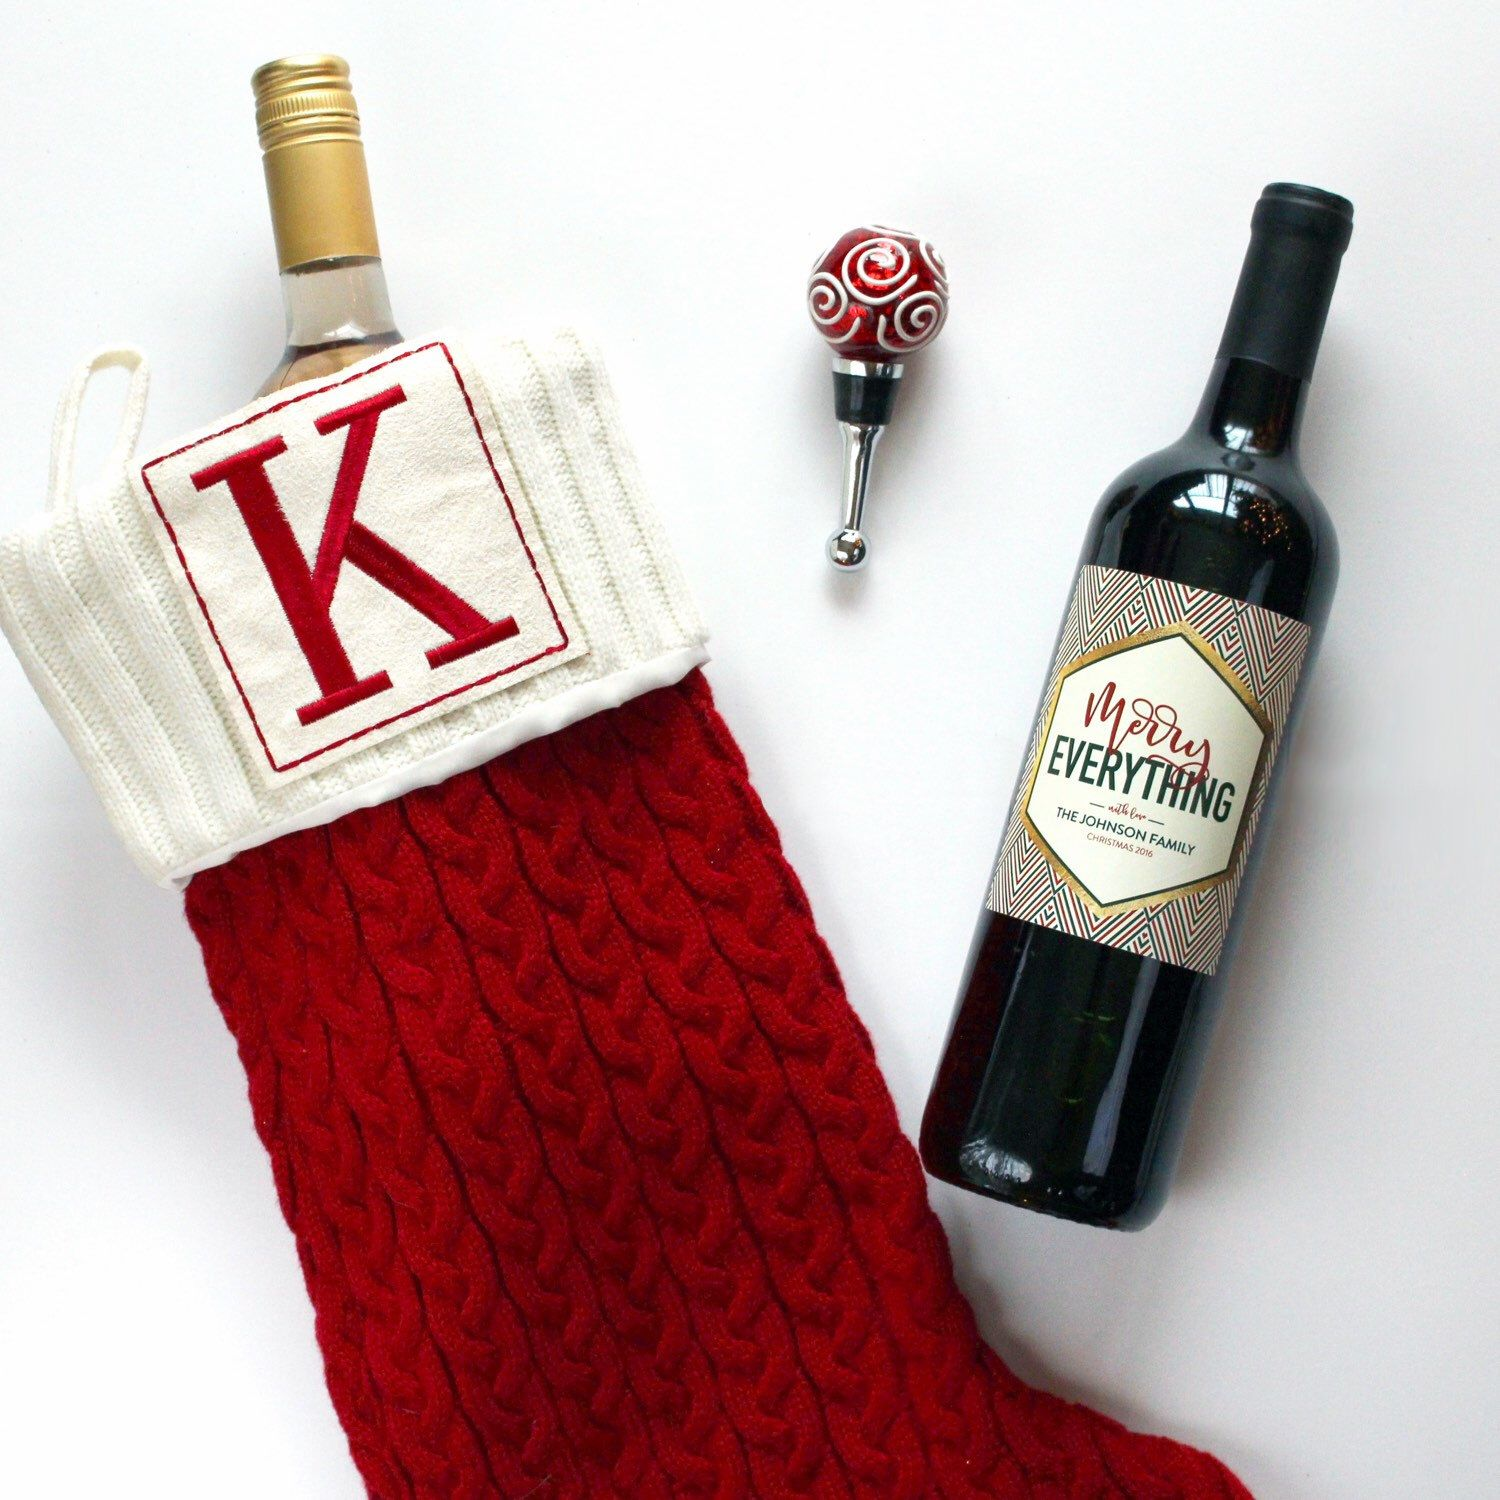 Now This Is My Kind Of A Stocking Stuffer Christmas Wine Bottle Labels Christmas Wine Bottles Christmas Wine